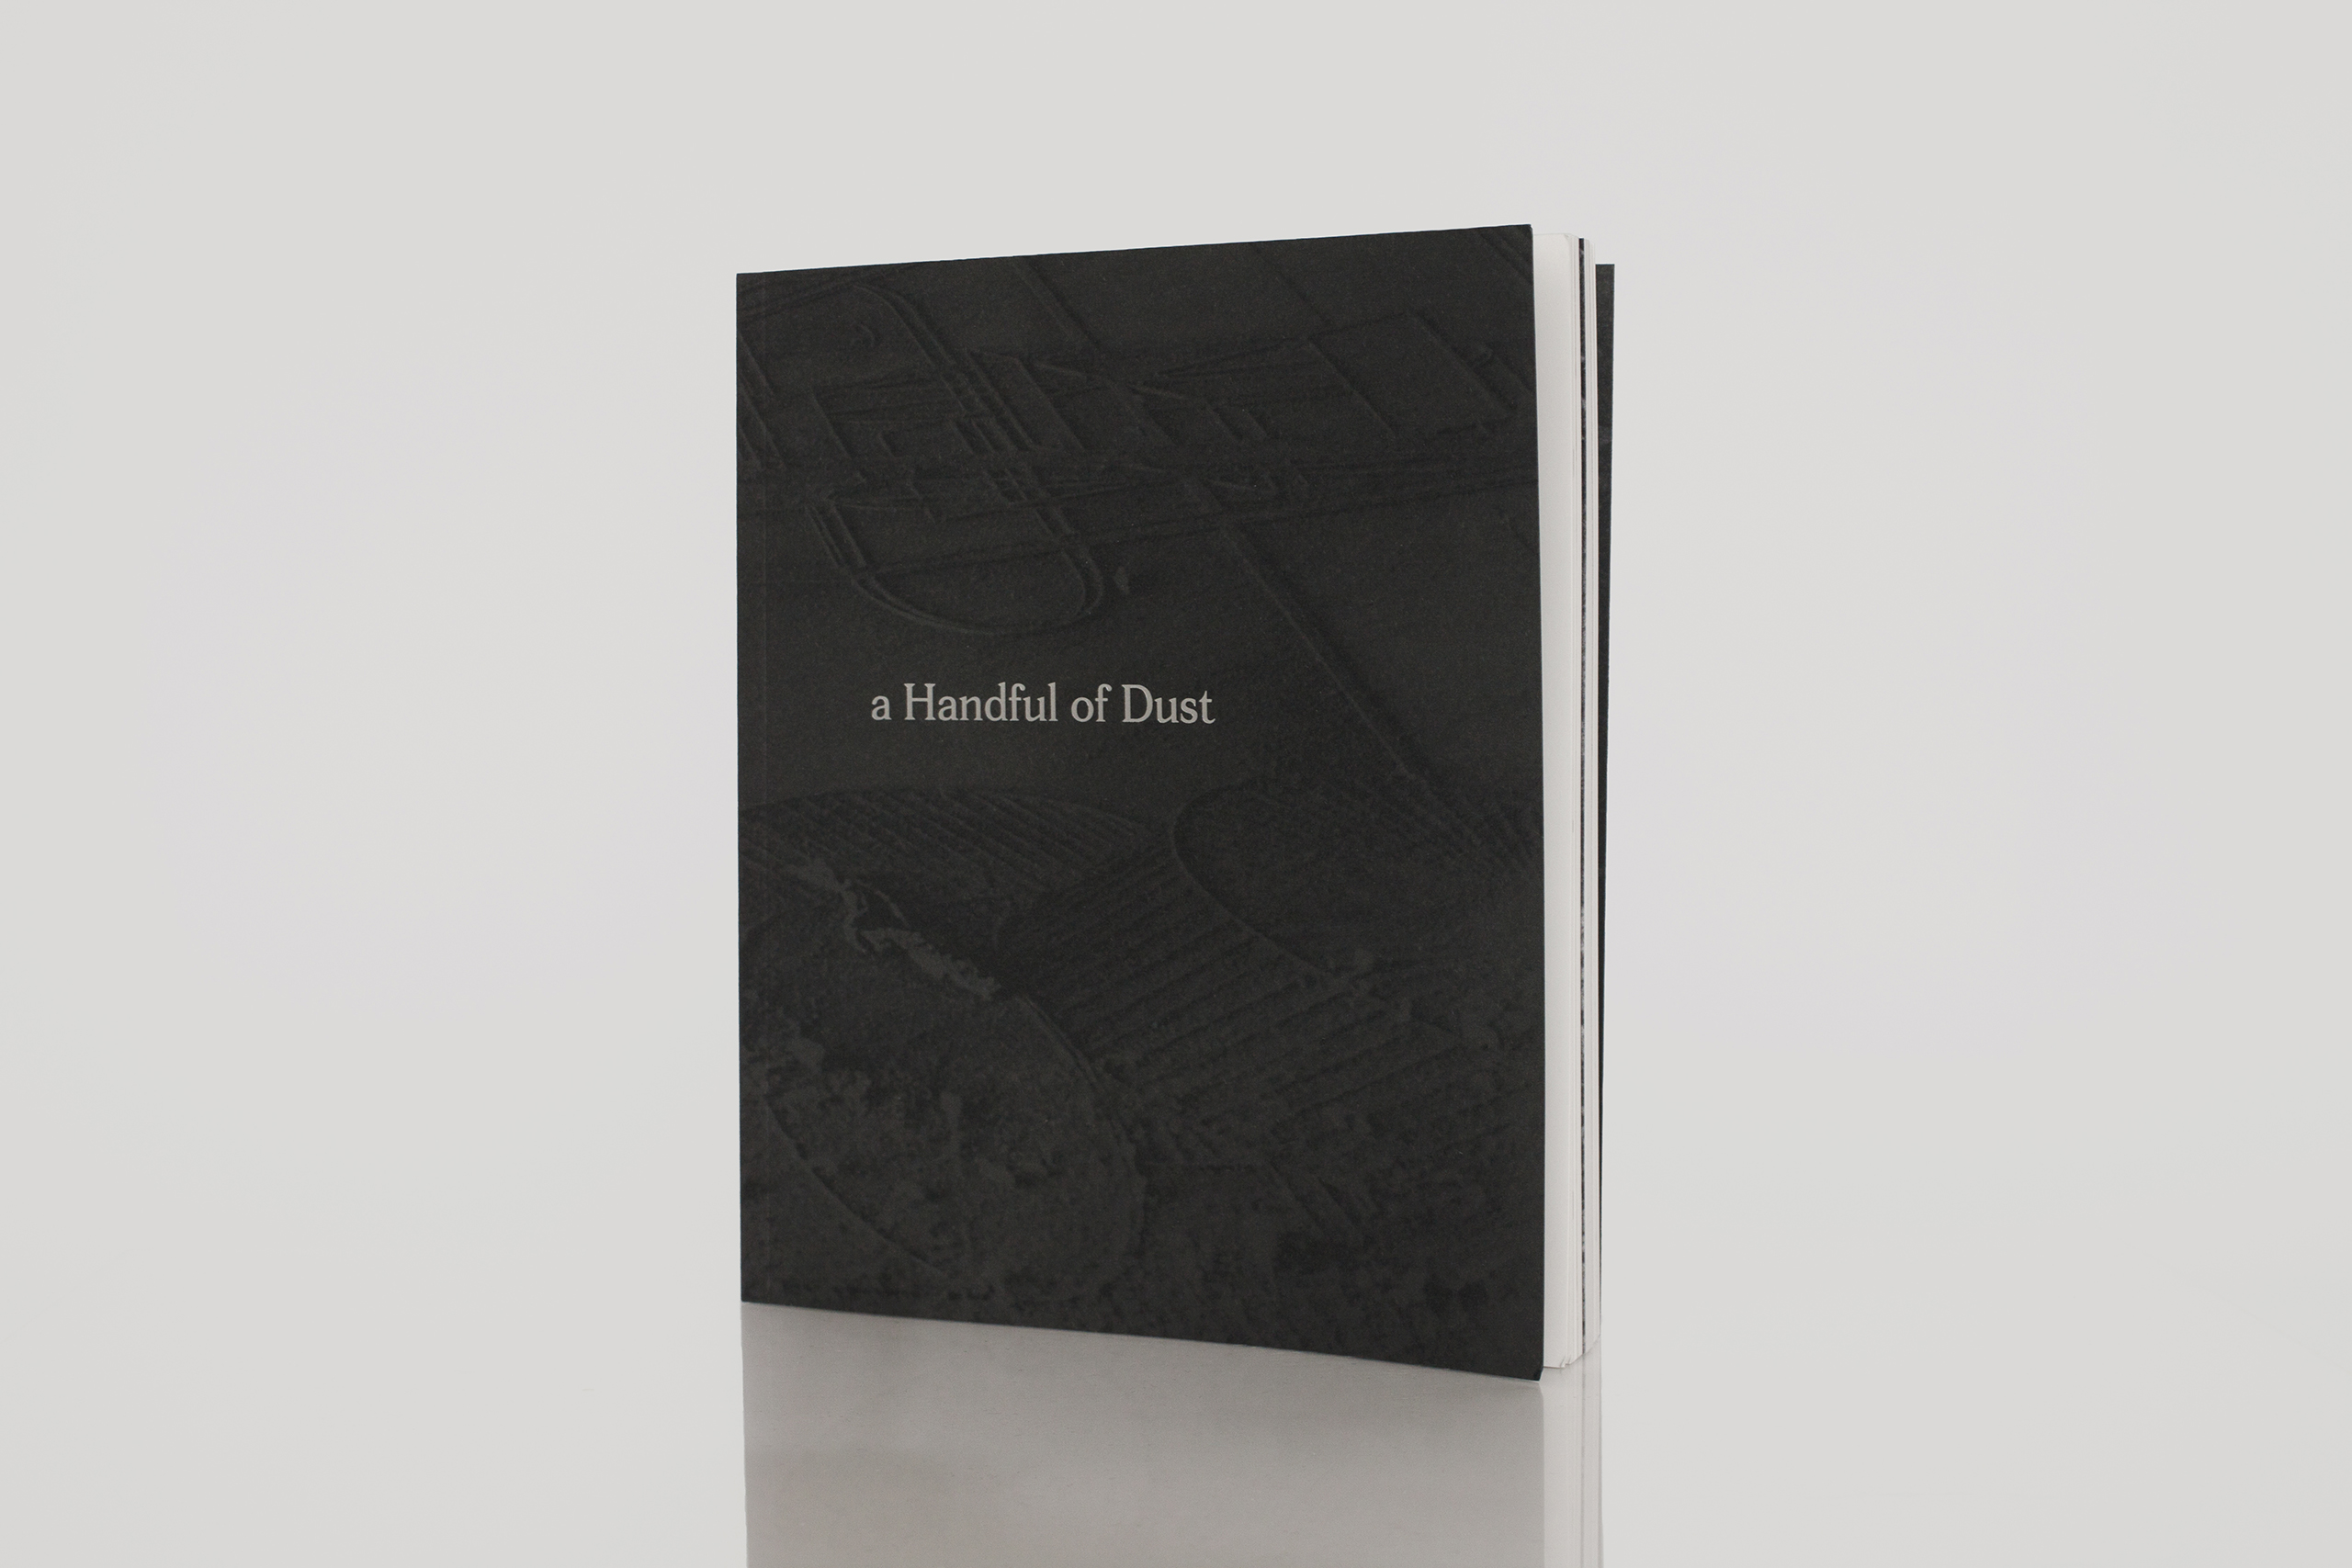 a Handful of Dust by David CampanyPublished by MACK